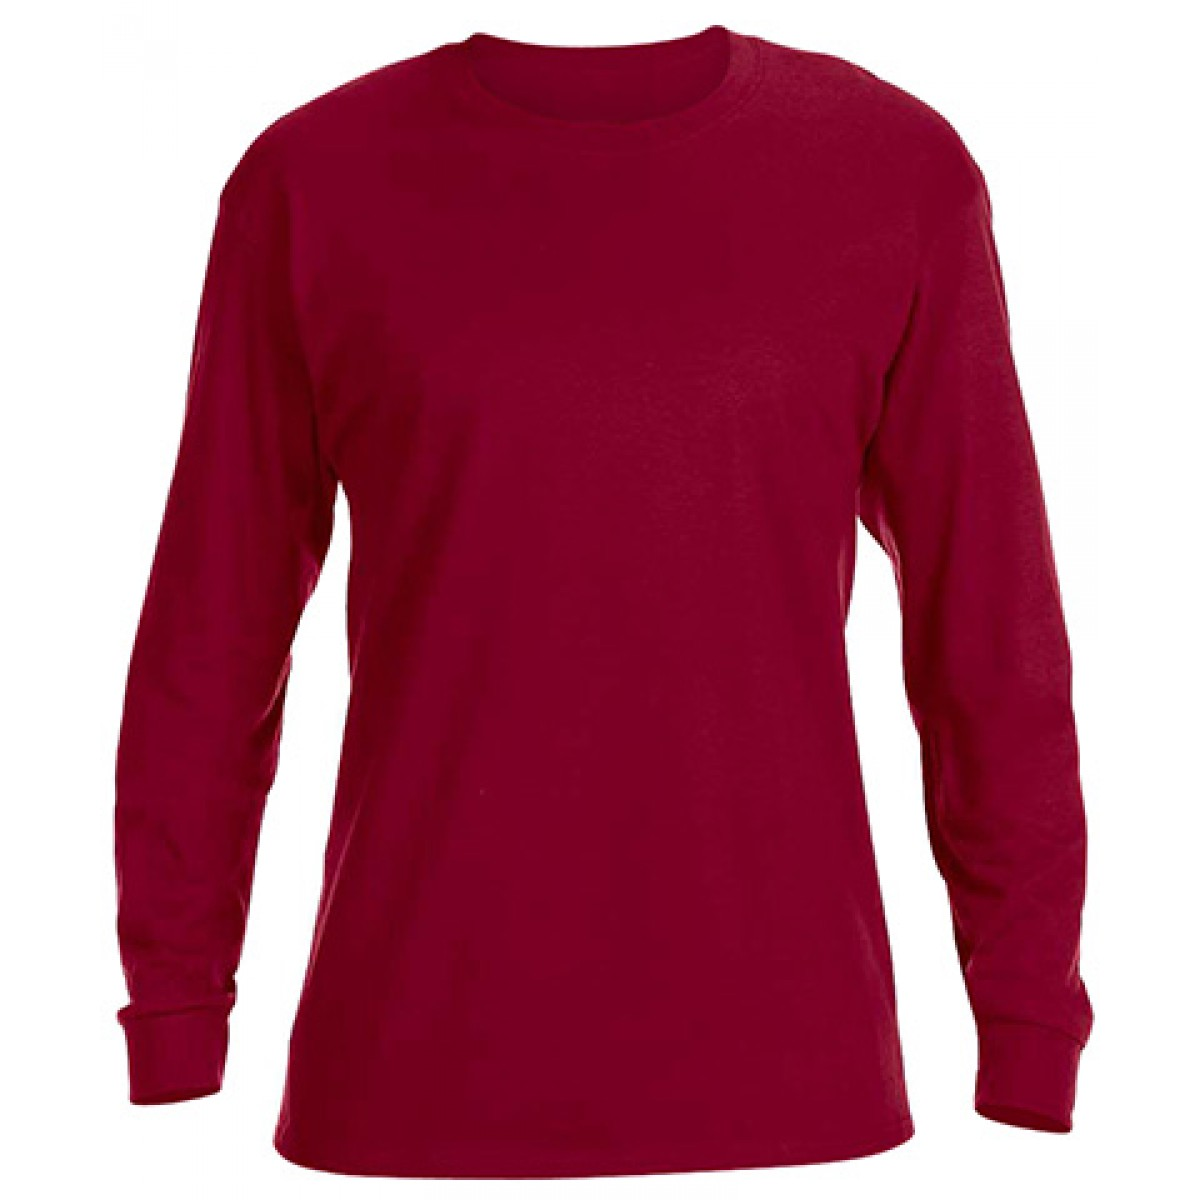 Heavy Cotton Long-Sleeve Adidas Shirt-Red-XL